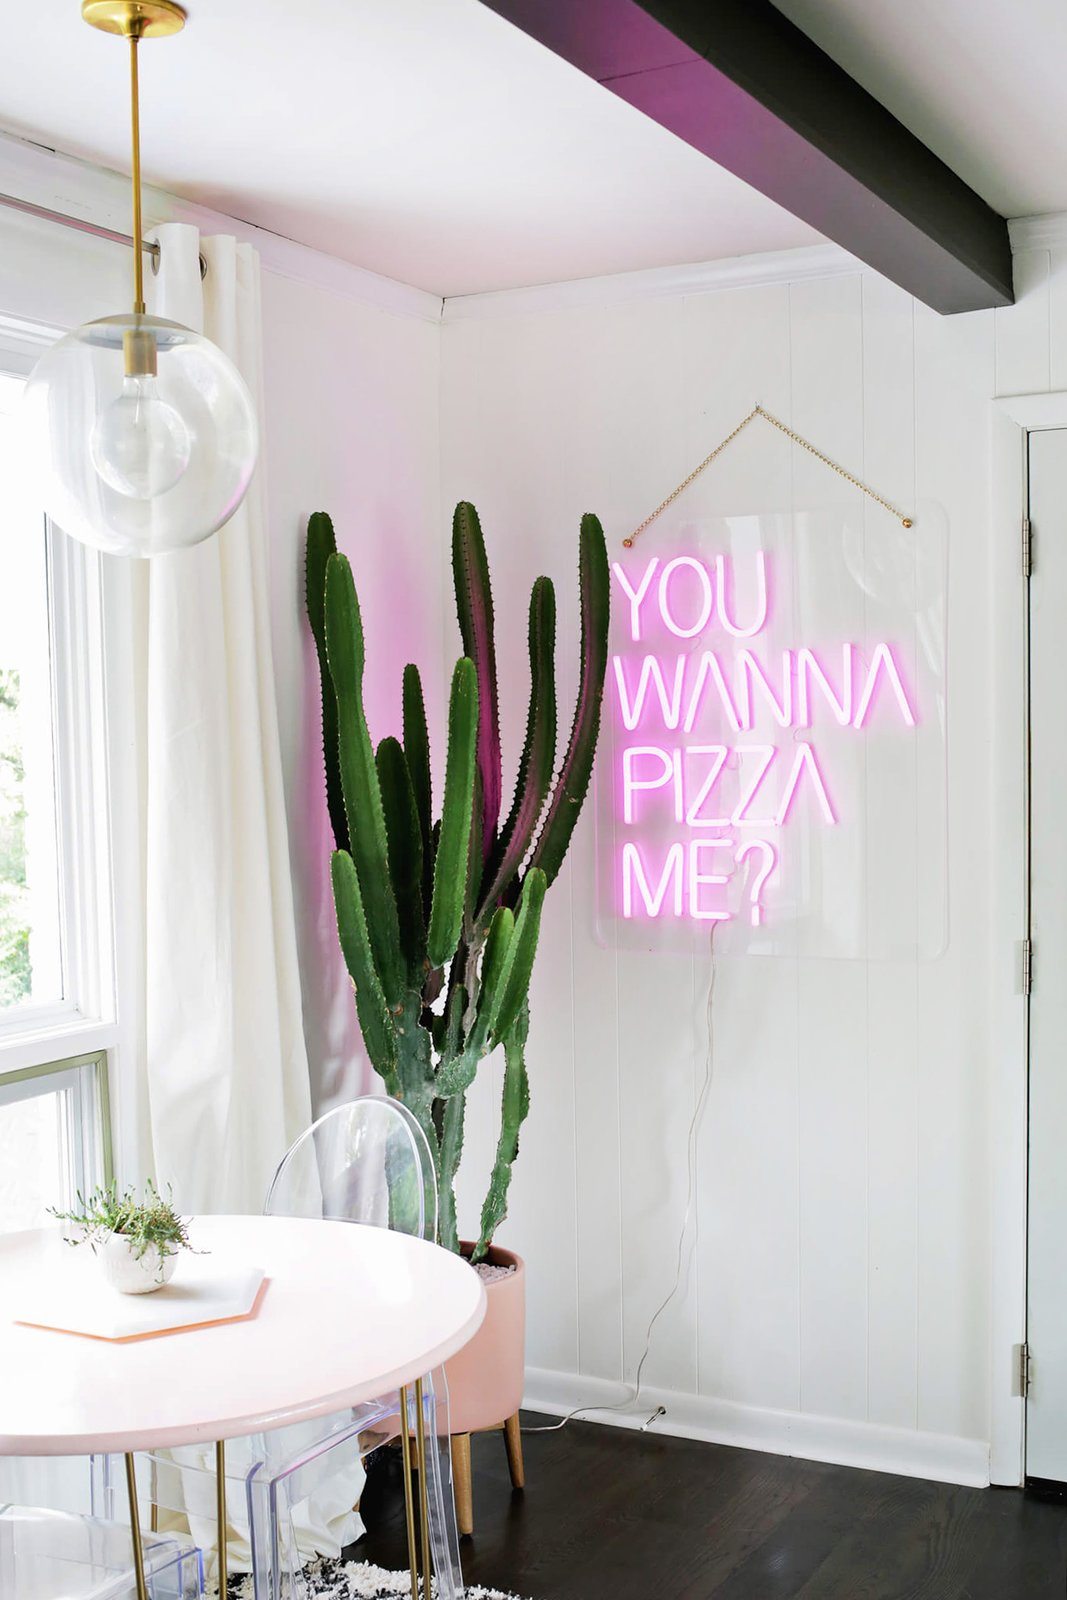 Pizza Me (695 $) a été créée en collaboration avec la blogueuse Laura Gummerman de The Band Wife.